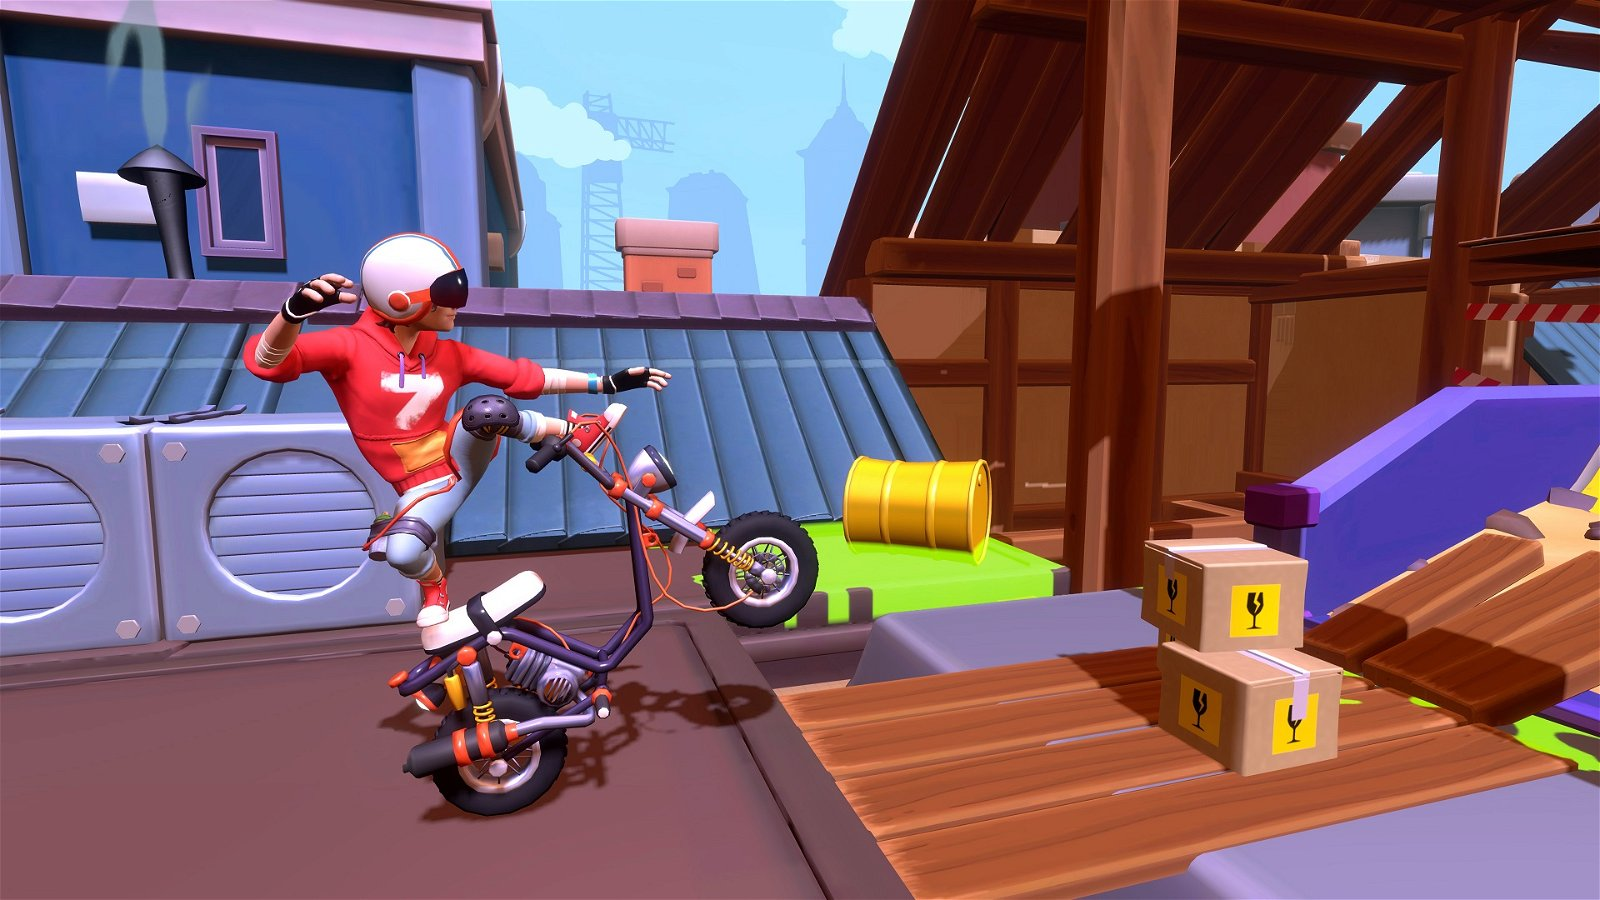 Urban Trial Tricky Comes To More Console Platforms And PC This July